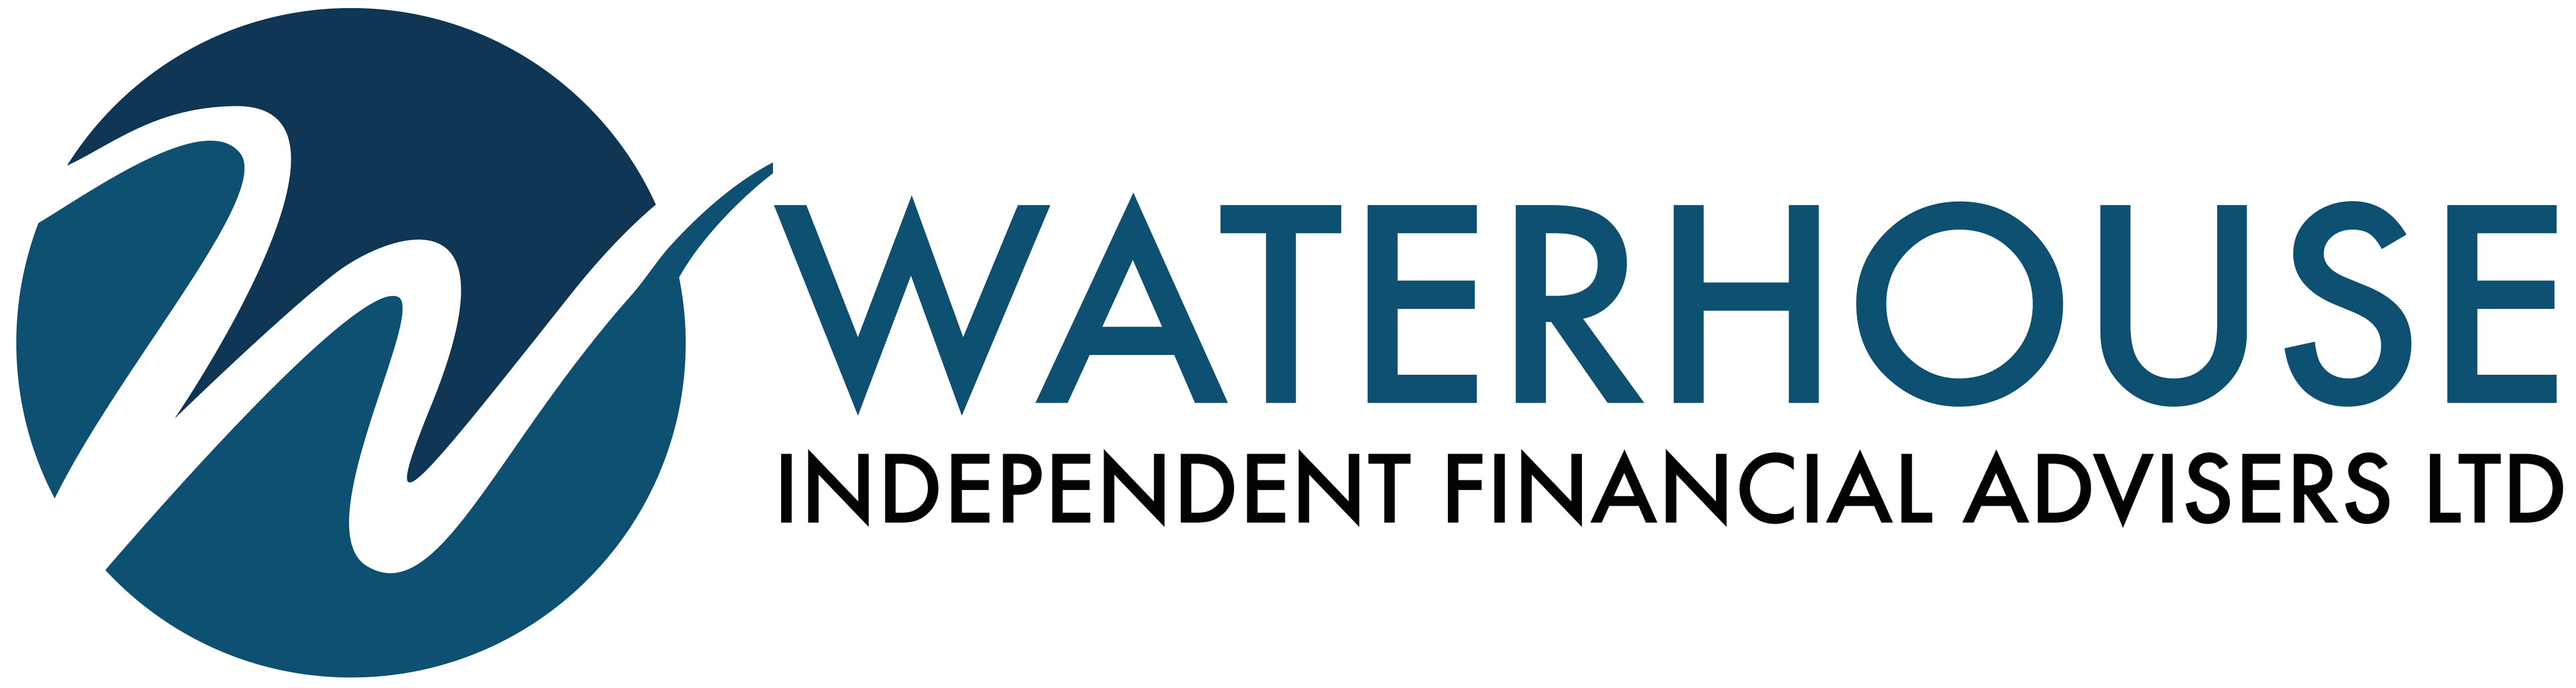 Waterhouse Independent Financial Advisers Ltd Logo